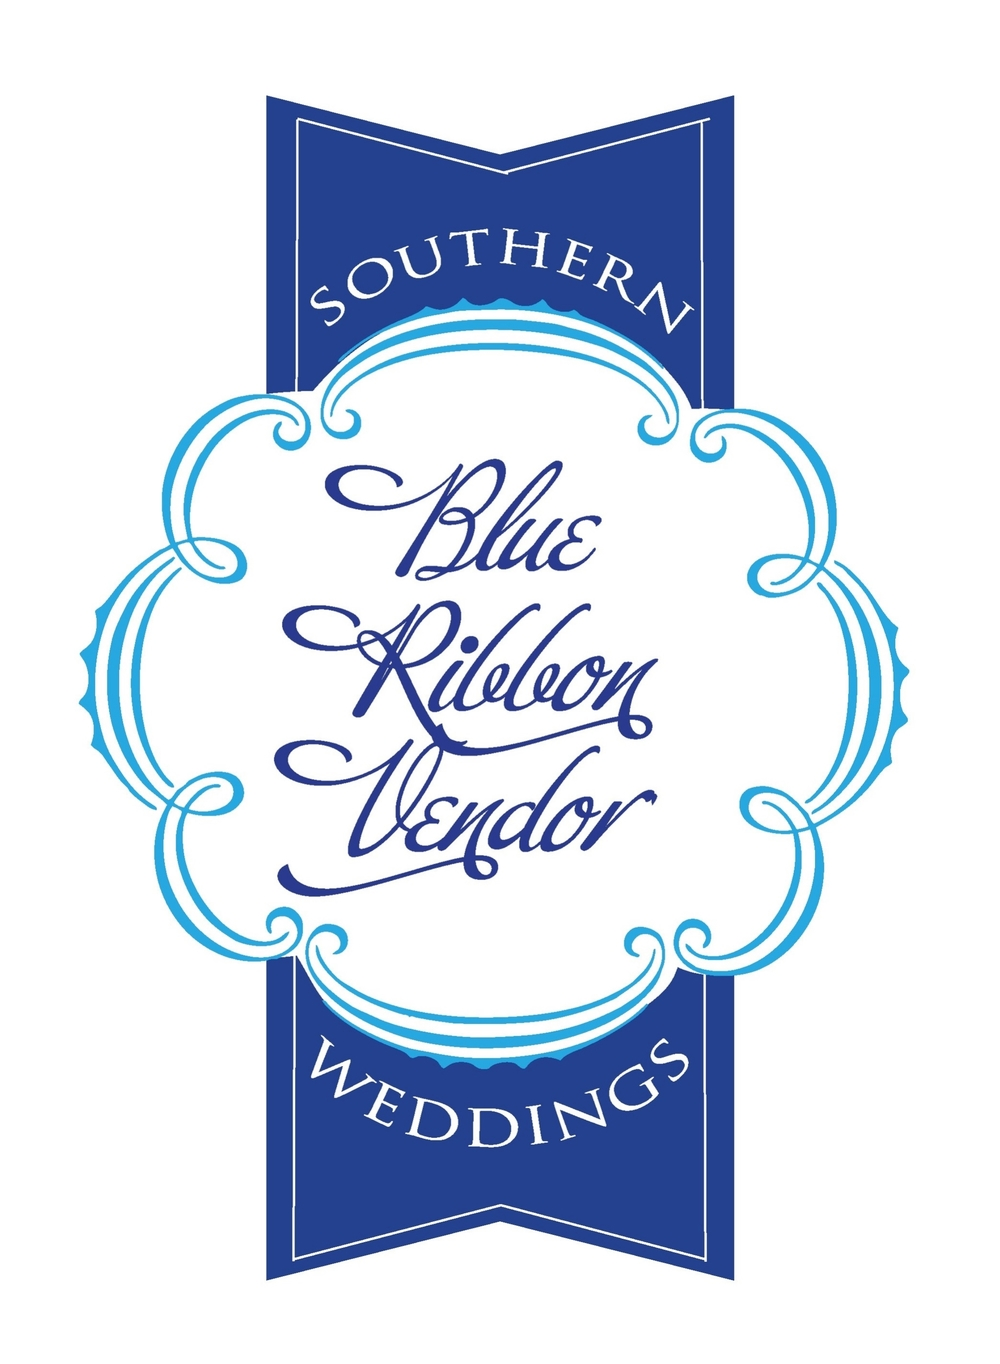 Southern Weddings Blue Ribbon official badge 2012.jpg